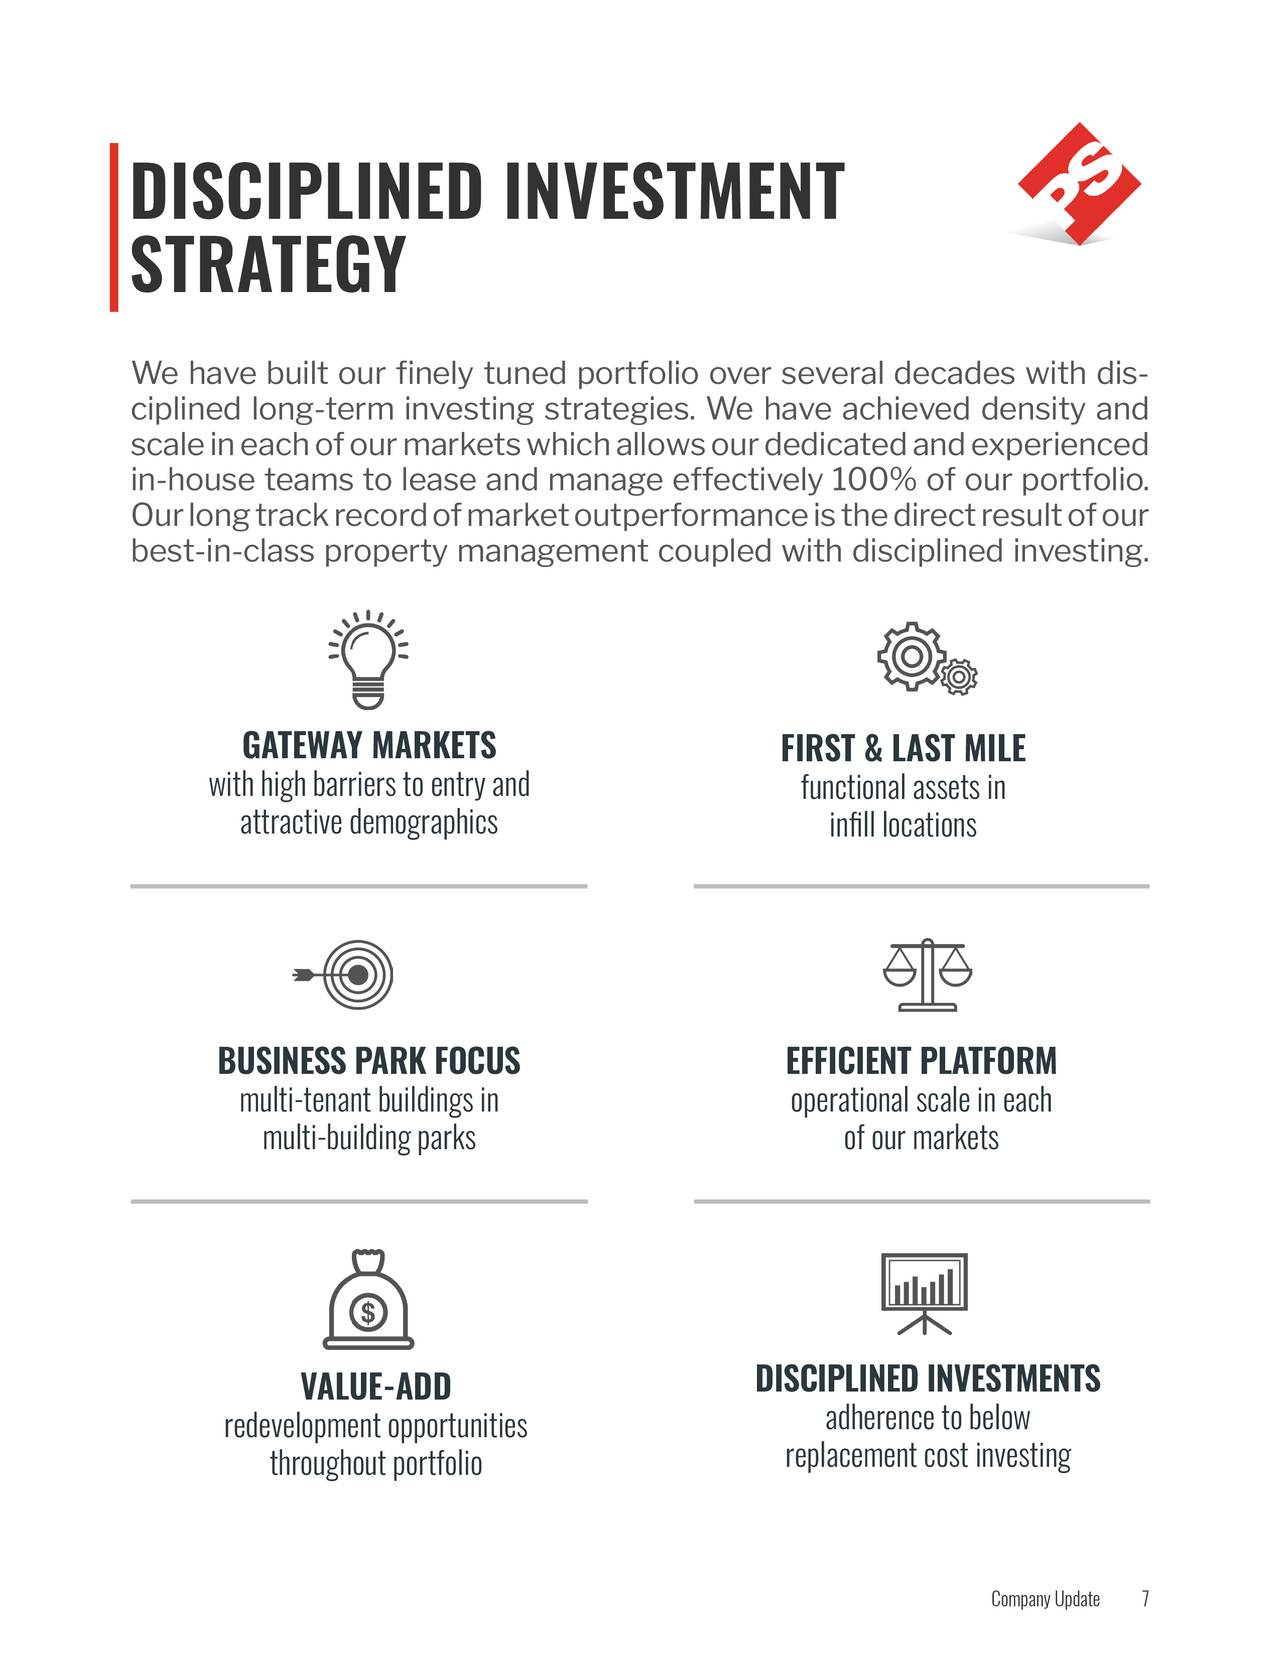 STRATEGY We have built our finely tuned portfolio over several decades with di- s ciplined long-term investing strategies. We have achieved density and scale in each of our markets which allows our dedicated and experienced in-house teams to lease and manage effectively 100% of our portfolio. Our long track record of market outperformance is the direct result of our best-in-class property management coupled with disciplined investing. GATEWAY MARKETS FIRST & LAST MILE with high barriers to entry and functional assets in attractive demographics infill locations BUSINESS PARK FOCUS EFFICIENT PLATFORM multi-tenant buildings in operational scale in each multi-building parks of our markets VALUE-ADD DISCIPLINED INVESTMENTS adherence to below redevelopment opportunities replacement cost investing throughout portfolio Company Upd7te